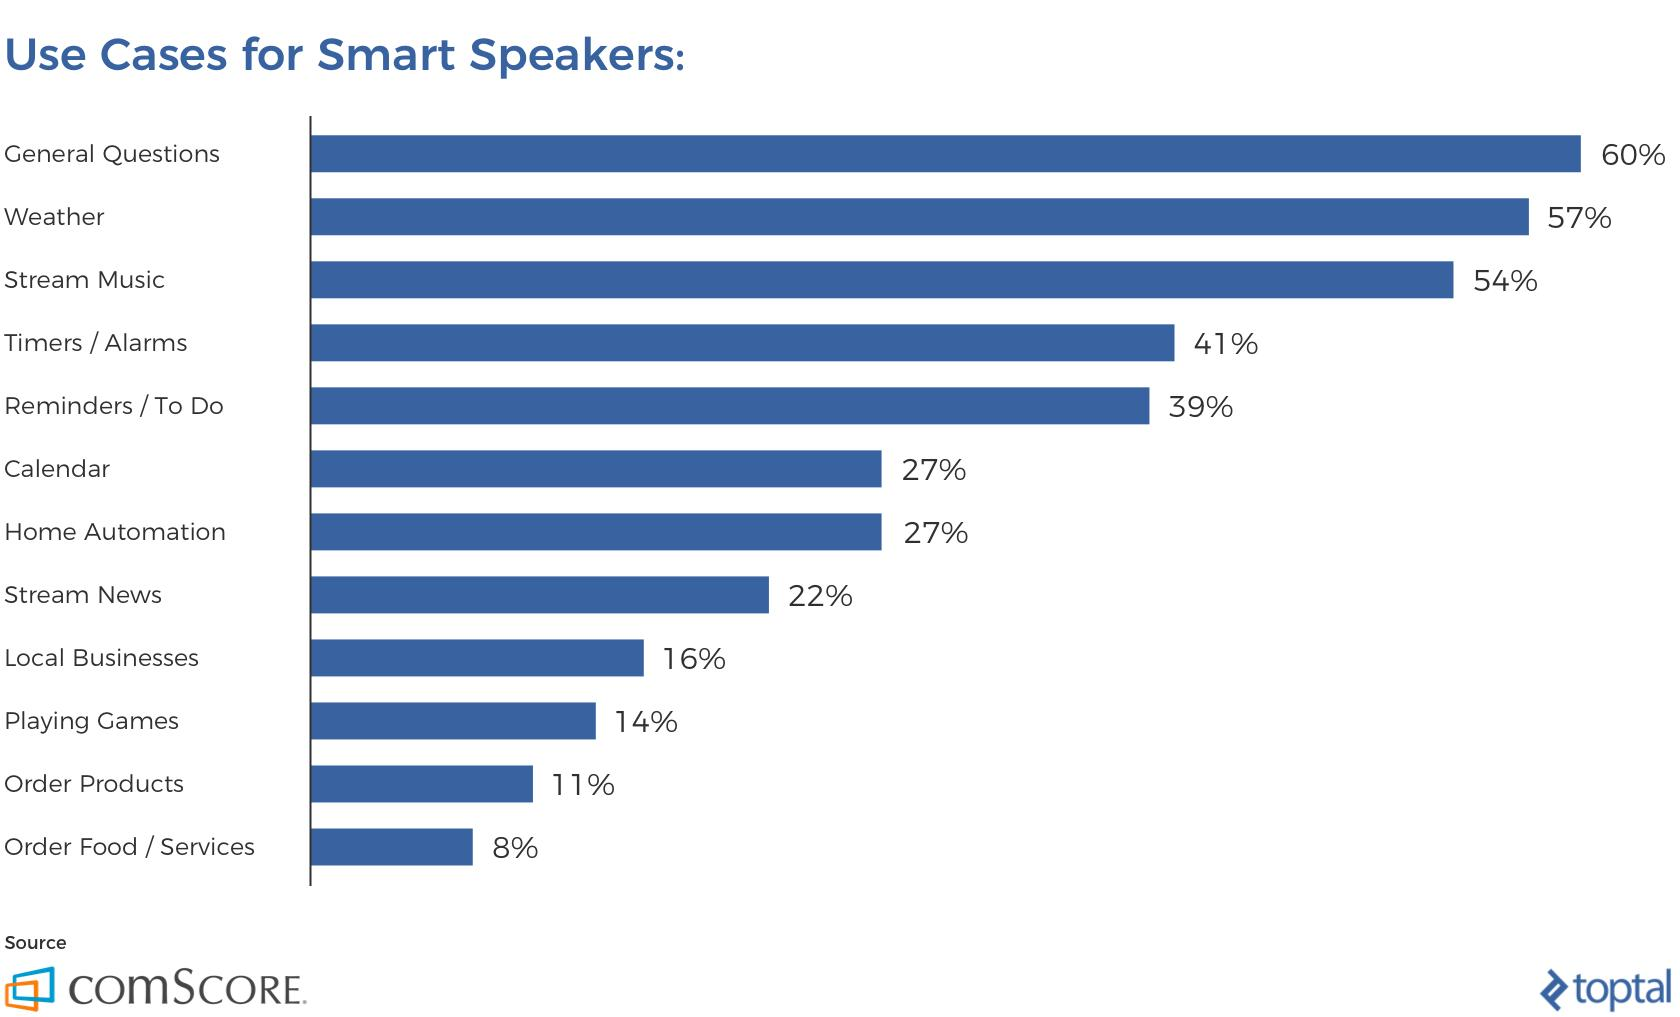 Statistics for smart speaker usage in the US